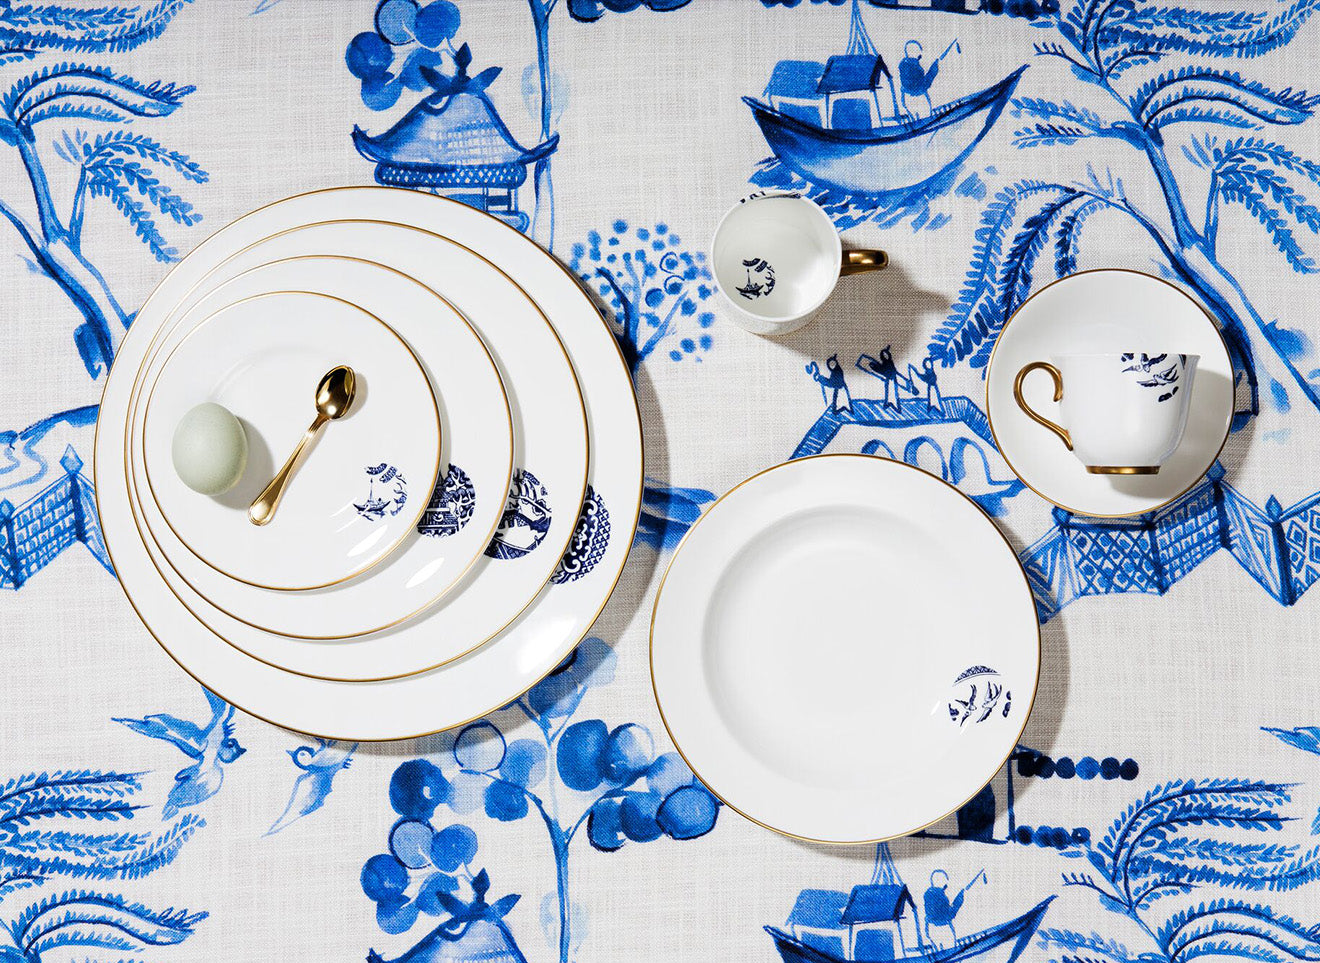 Richard Brendon Details from Willow crockery, cups and saucers